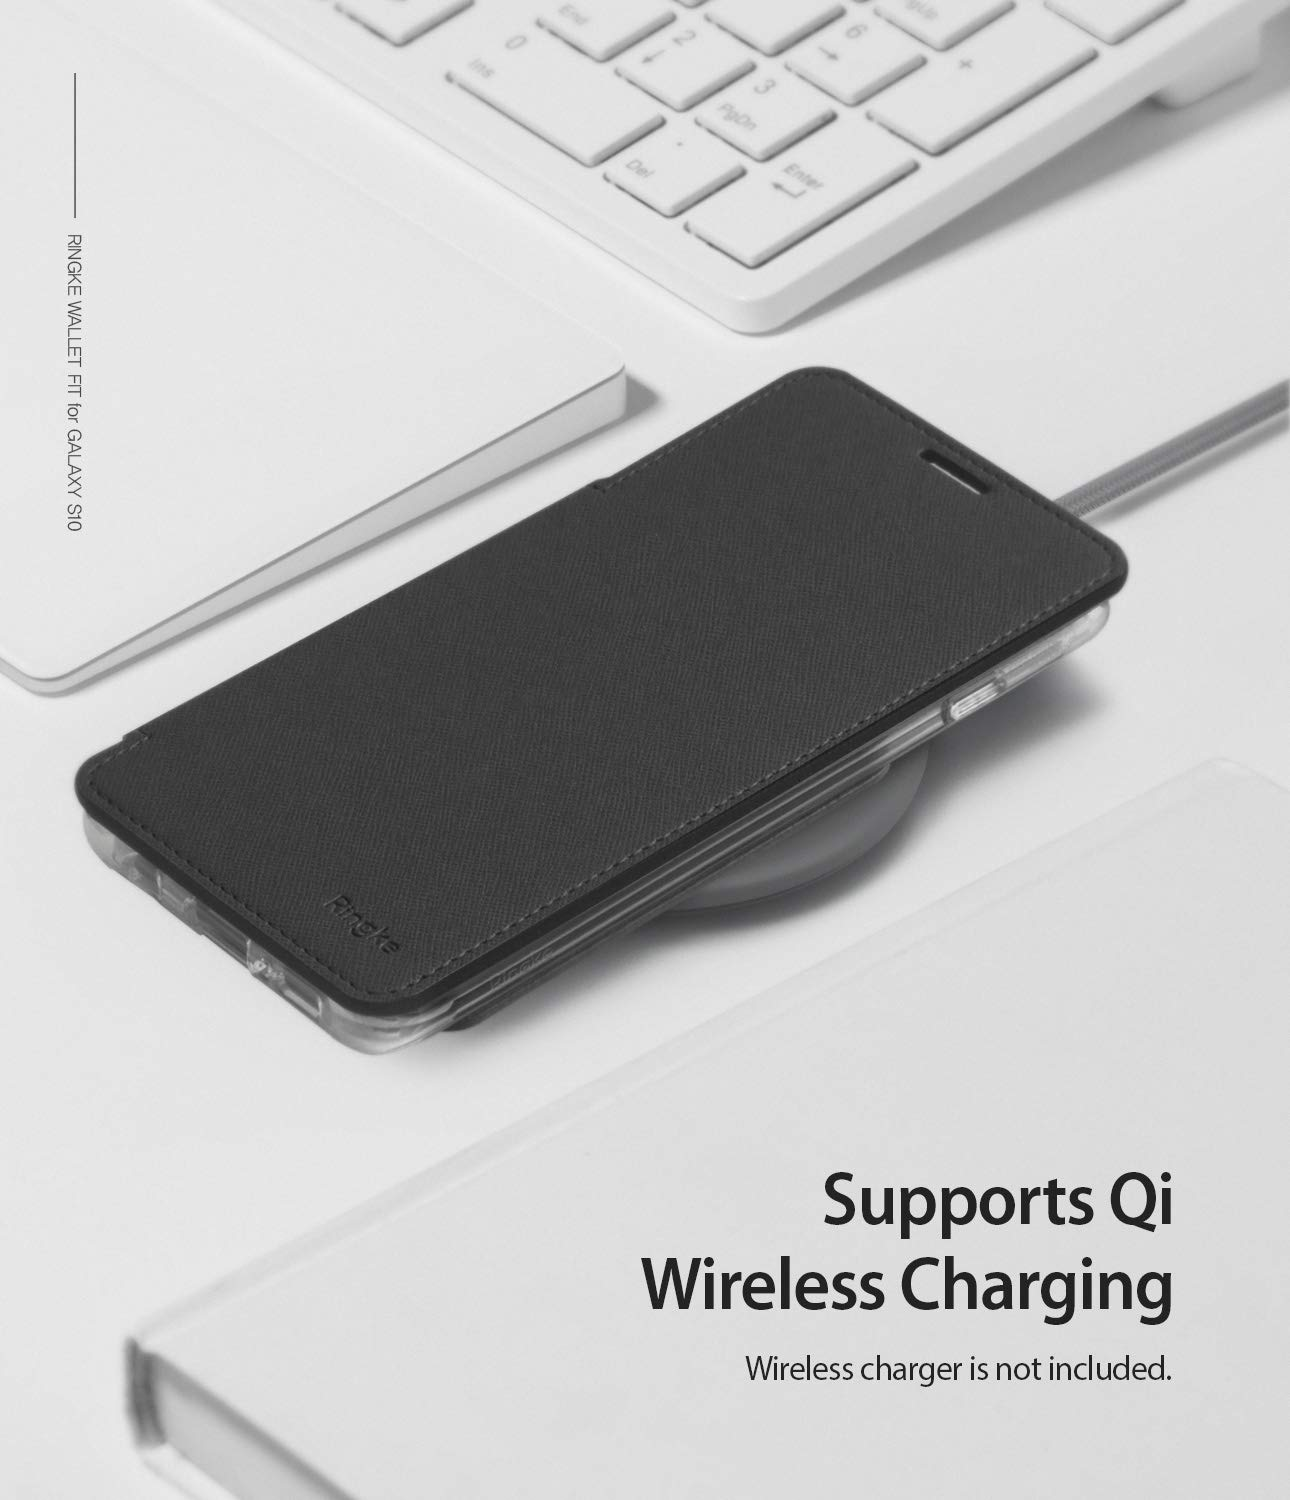 supports qi / wireless charge / powershare